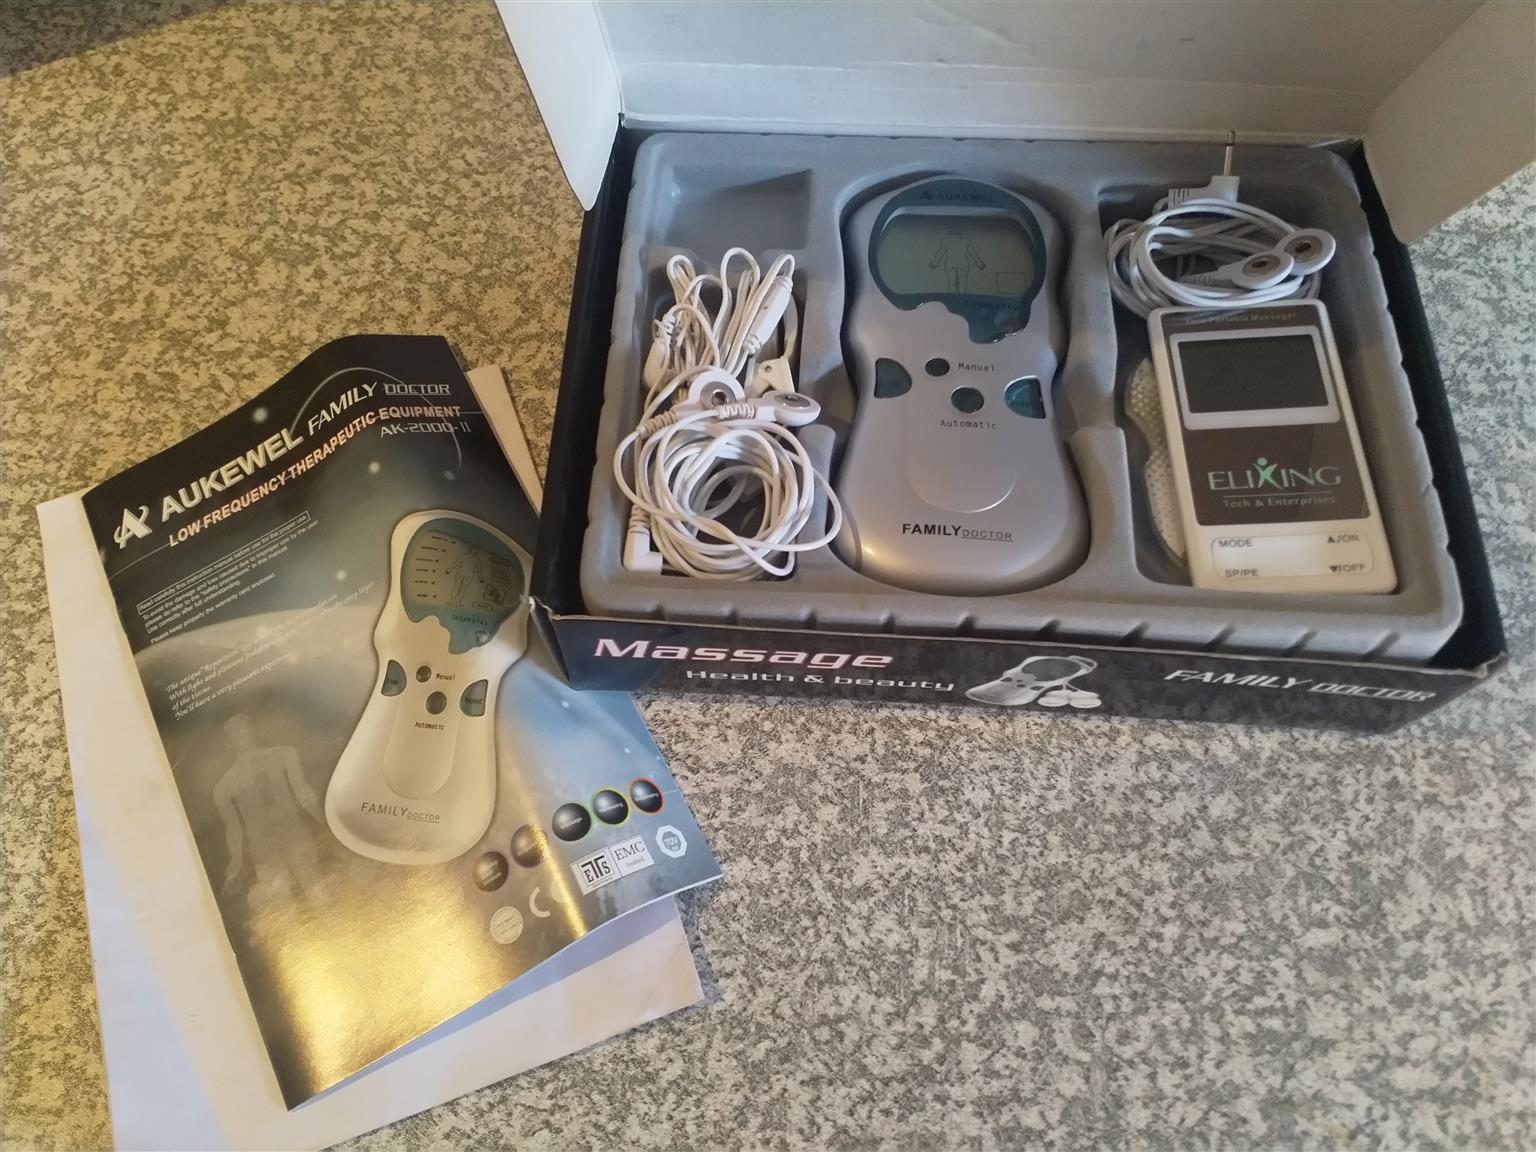 Aukewel Family Doctor - Low Frequency Therapeutic Equipment